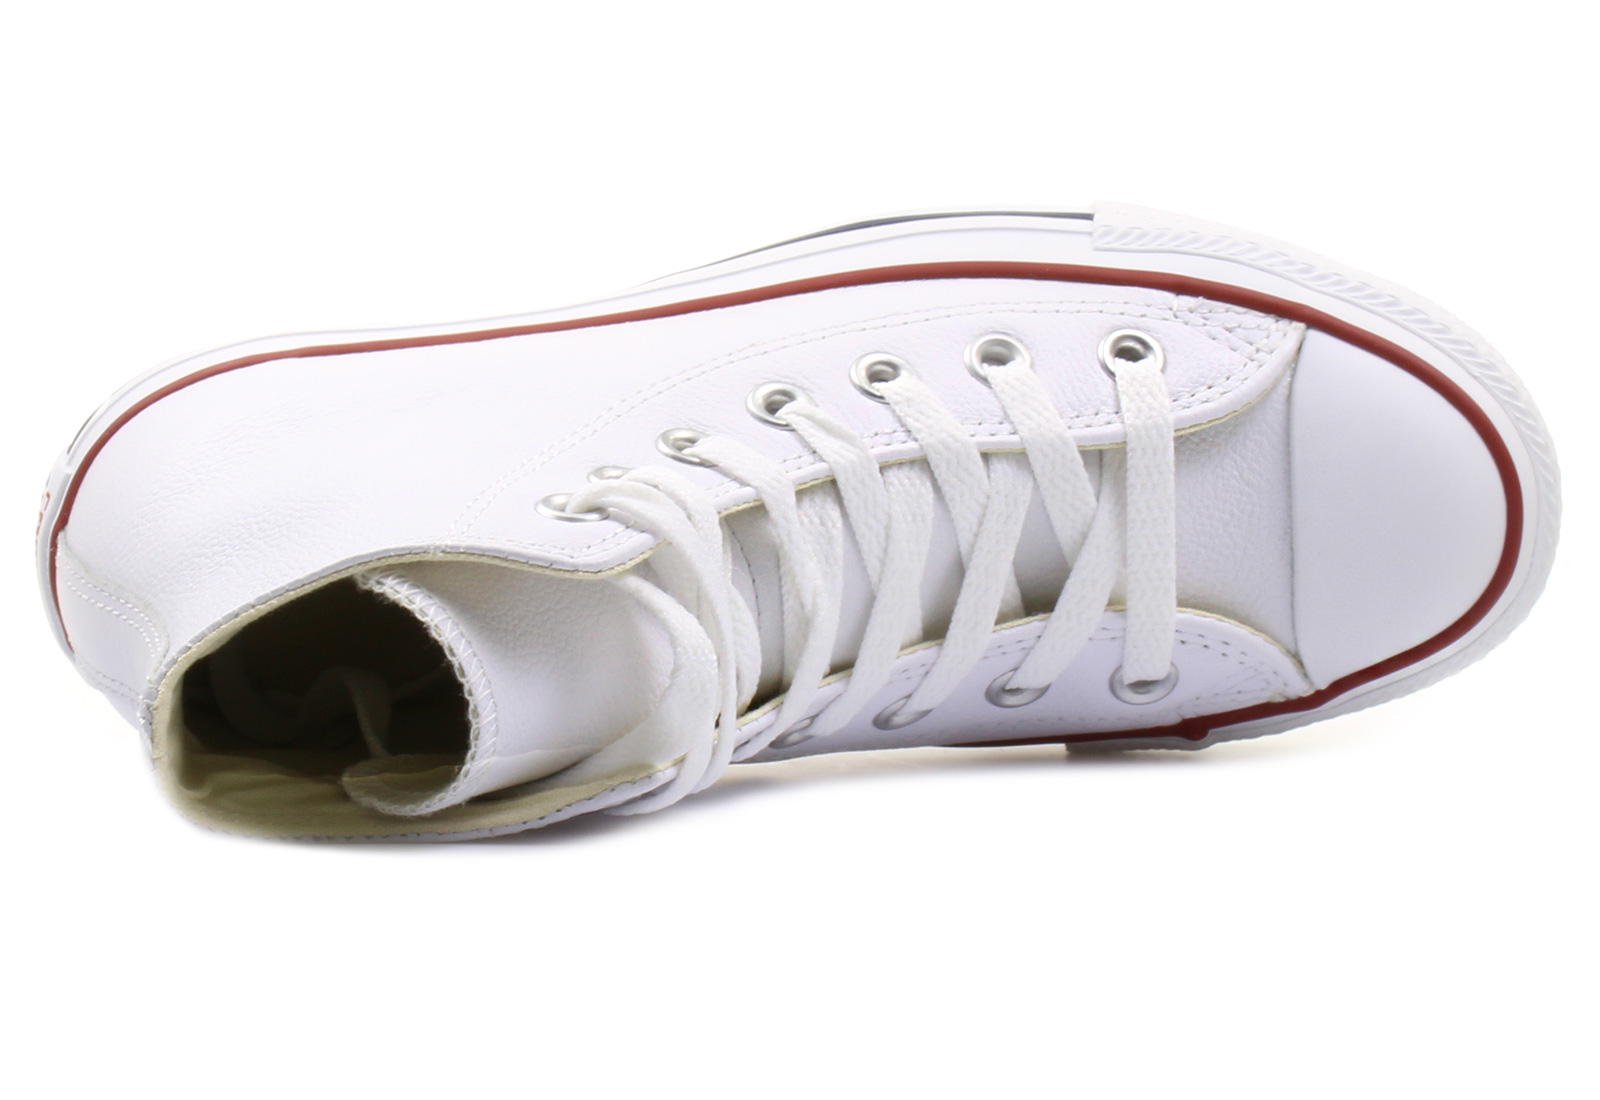 Converse Tenisky - Ct As Core Leather Hi - 132169cTenisky 3ed63b2dbdf